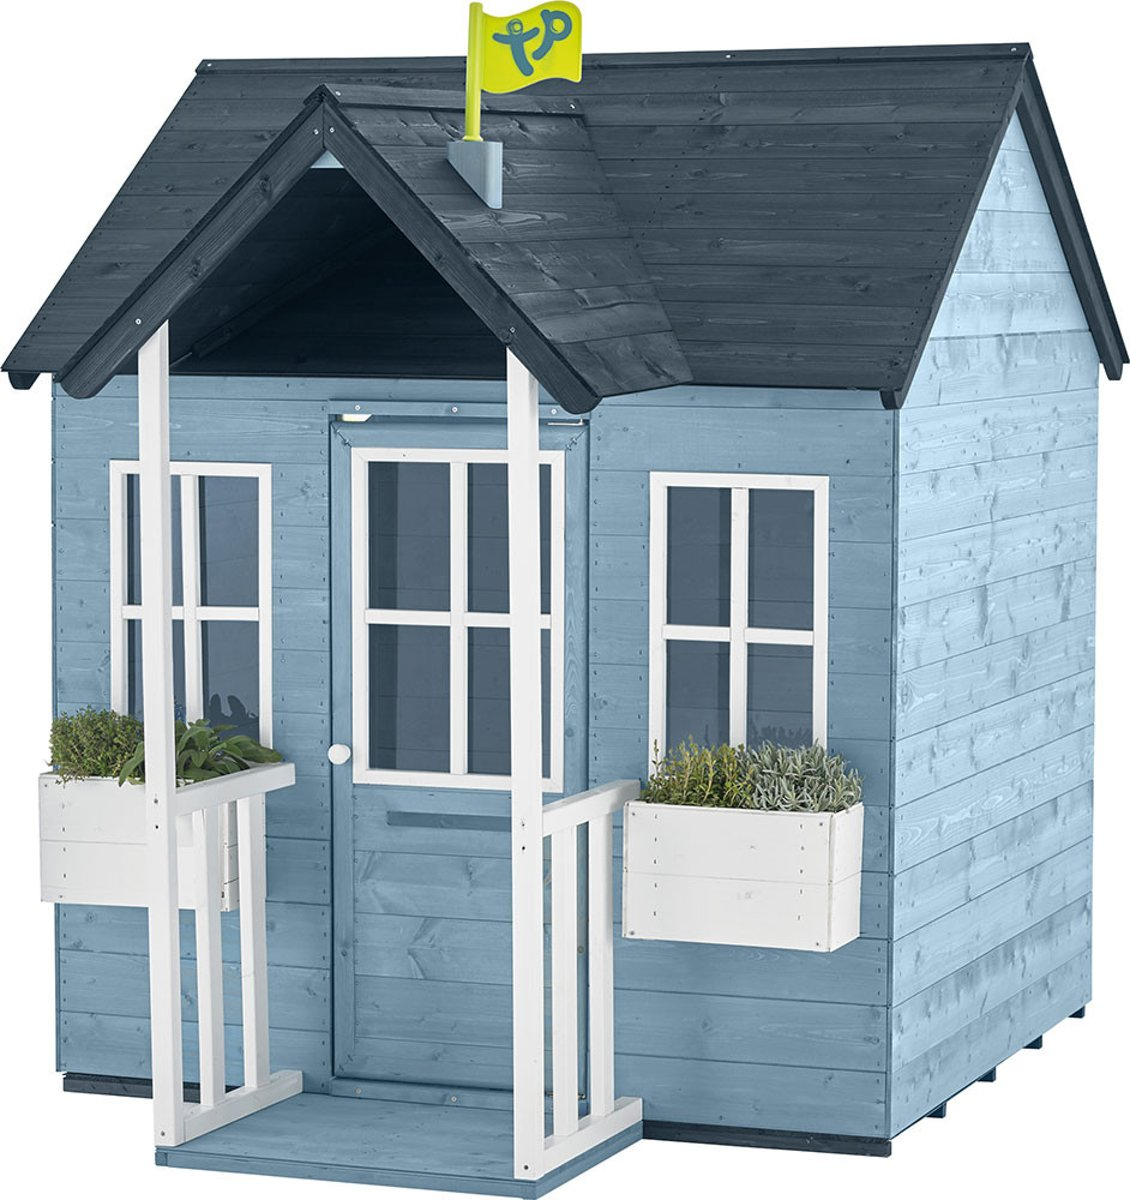 TP Play House Forest Villa -   - 122 x 106 x 154 cm